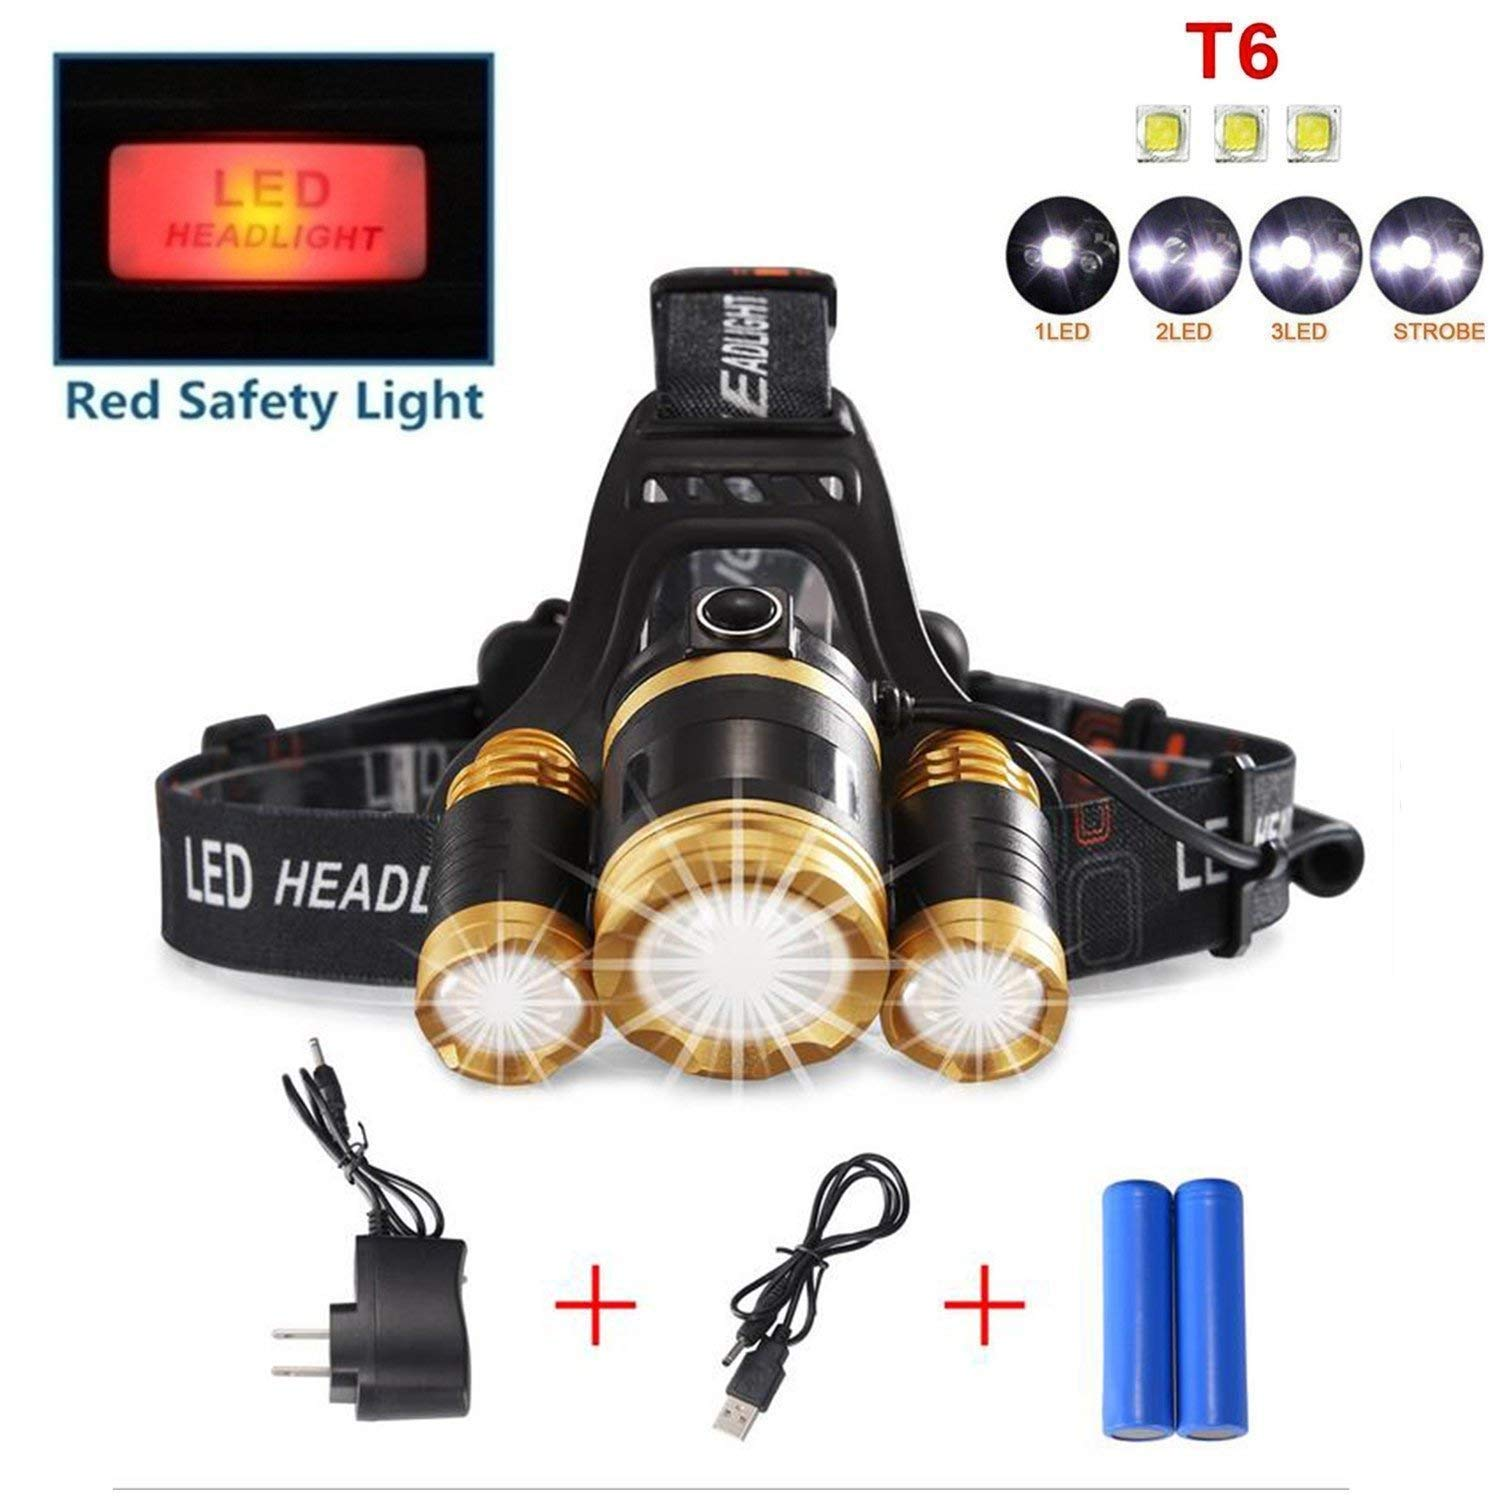 Skyee Brightest 3T6 LED Headlamp, Waterproof Stretch Zoom 4 Modes 10000 Lumens Flashlight USB Rechargeable with iPhone/iPad/Android, Wall Charger with 18650 Batteries(Included), for Camping, Hiking